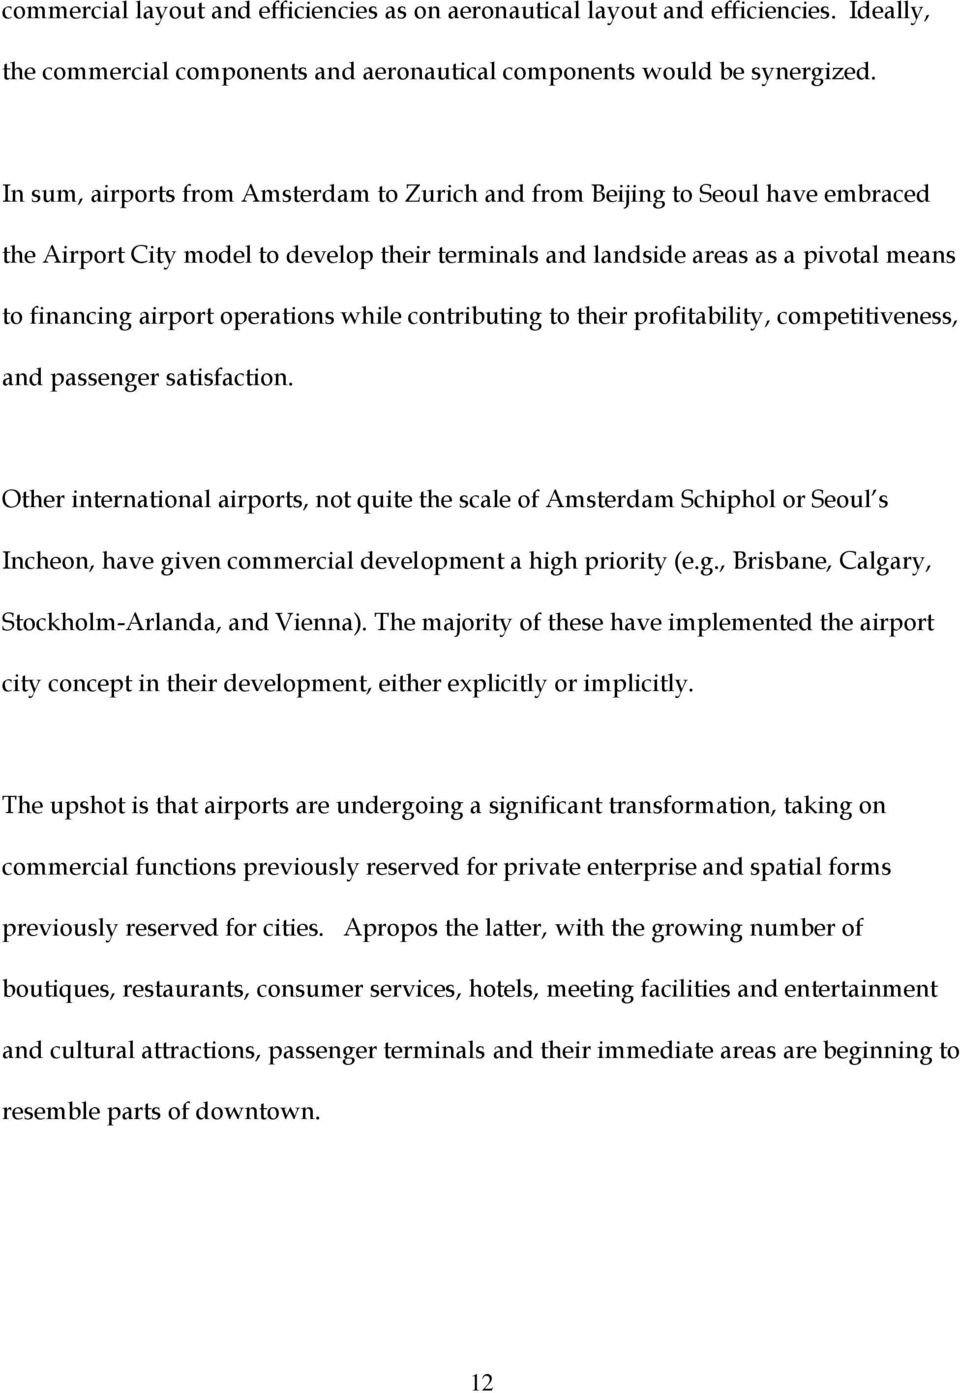 The Evolution Of Airport Cities And The Aerotropolis John D